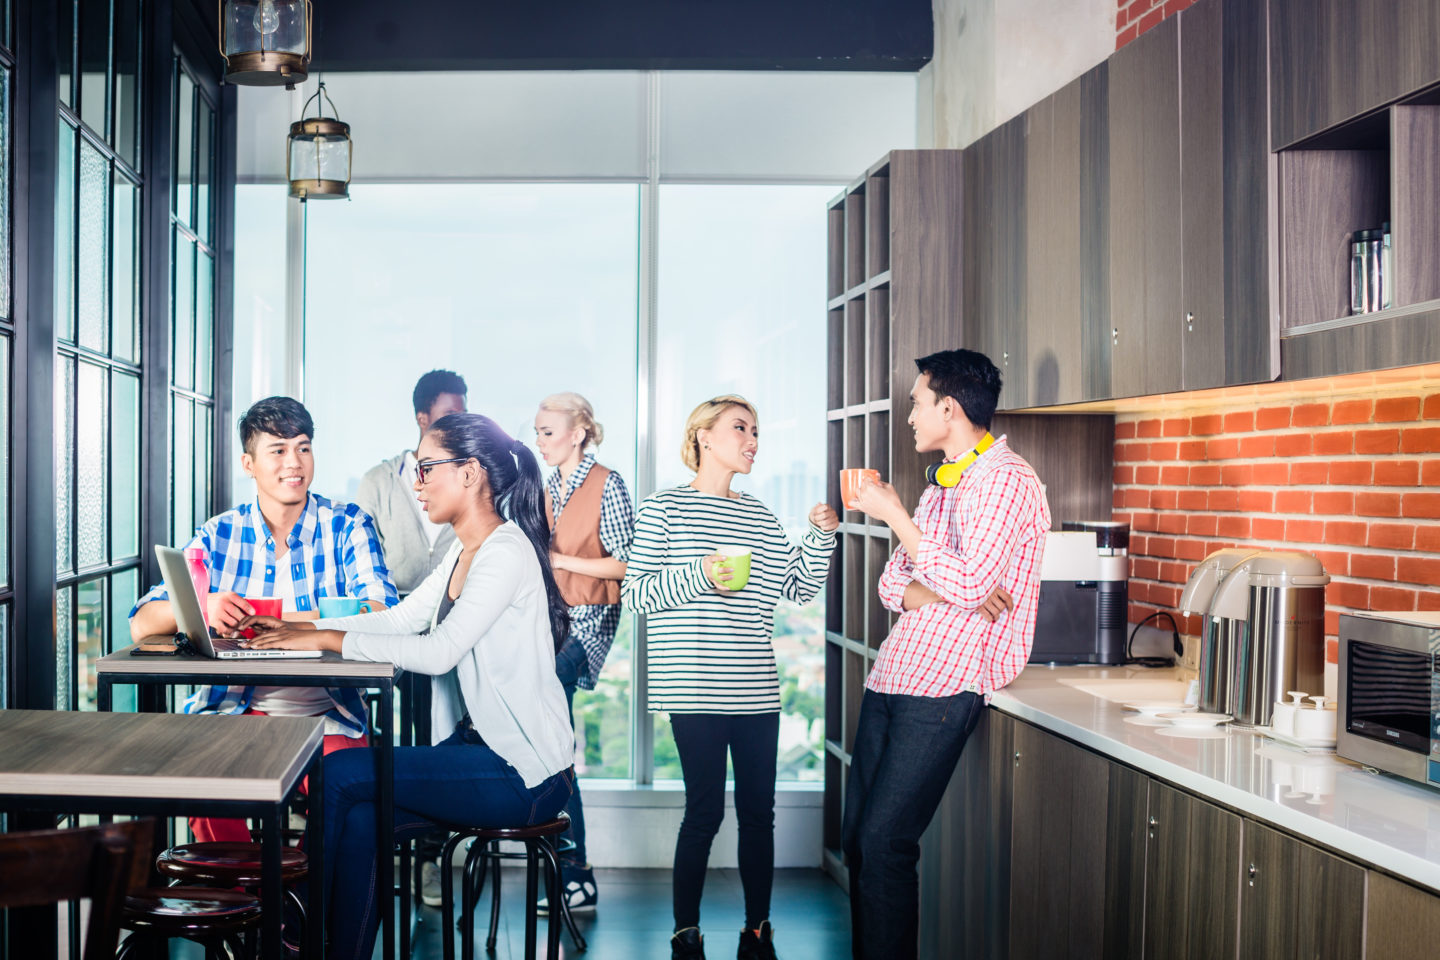 Ways to Boost Employee Wellbeing in the Workplace